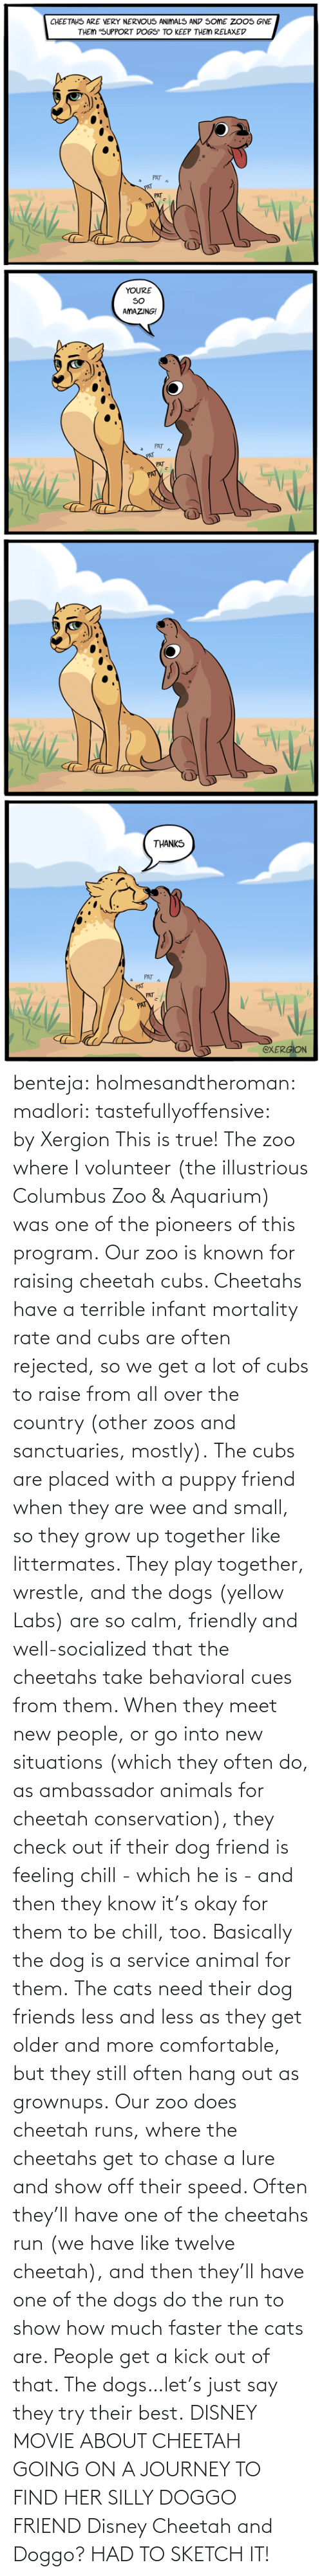 program: benteja:  holmesandtheroman:  madlori:  tastefullyoffensive: by Xergion This is true! The zoo where I volunteer (the illustrious Columbus Zoo & Aquarium) was one of the pioneers of this program. Our zoo is known for raising cheetah cubs. Cheetahs have a terrible infant mortality rate and cubs are often rejected, so we get a lot of cubs to raise from all over the country (other zoos and sanctuaries, mostly). The cubs are placed with a puppy friend when they are wee and small, so they grow up together like littermates. They play together, wrestle, and the dogs (yellow Labs) are so calm, friendly and well-socialized that the cheetahs take behavioral cues from them. When they meet new people, or go into new situations (which they often do, as ambassador animals for cheetah conservation), they check out if their dog friend is feeling chill - which he is - and then they know it's okay for them to be chill, too. Basically the dog is a service animal for them. The cats need their dog friends less and less as they get older and more comfortable, but they still often hang out as grownups. Our zoo does cheetah runs, where the cheetahs get to chase a lure and show off their speed. Often they'll have one of the cheetahs run (we have like twelve cheetah), and then they'll have one of the dogs do the run to show how much faster the cats are. People get a kick out of that. The dogs…let's just say they try their best.   DISNEY MOVIE ABOUT CHEETAH GOING ON A JOURNEY TO FIND HER SILLY DOGGO FRIEND  Disney Cheetah and Doggo? HAD TO SKETCH IT!